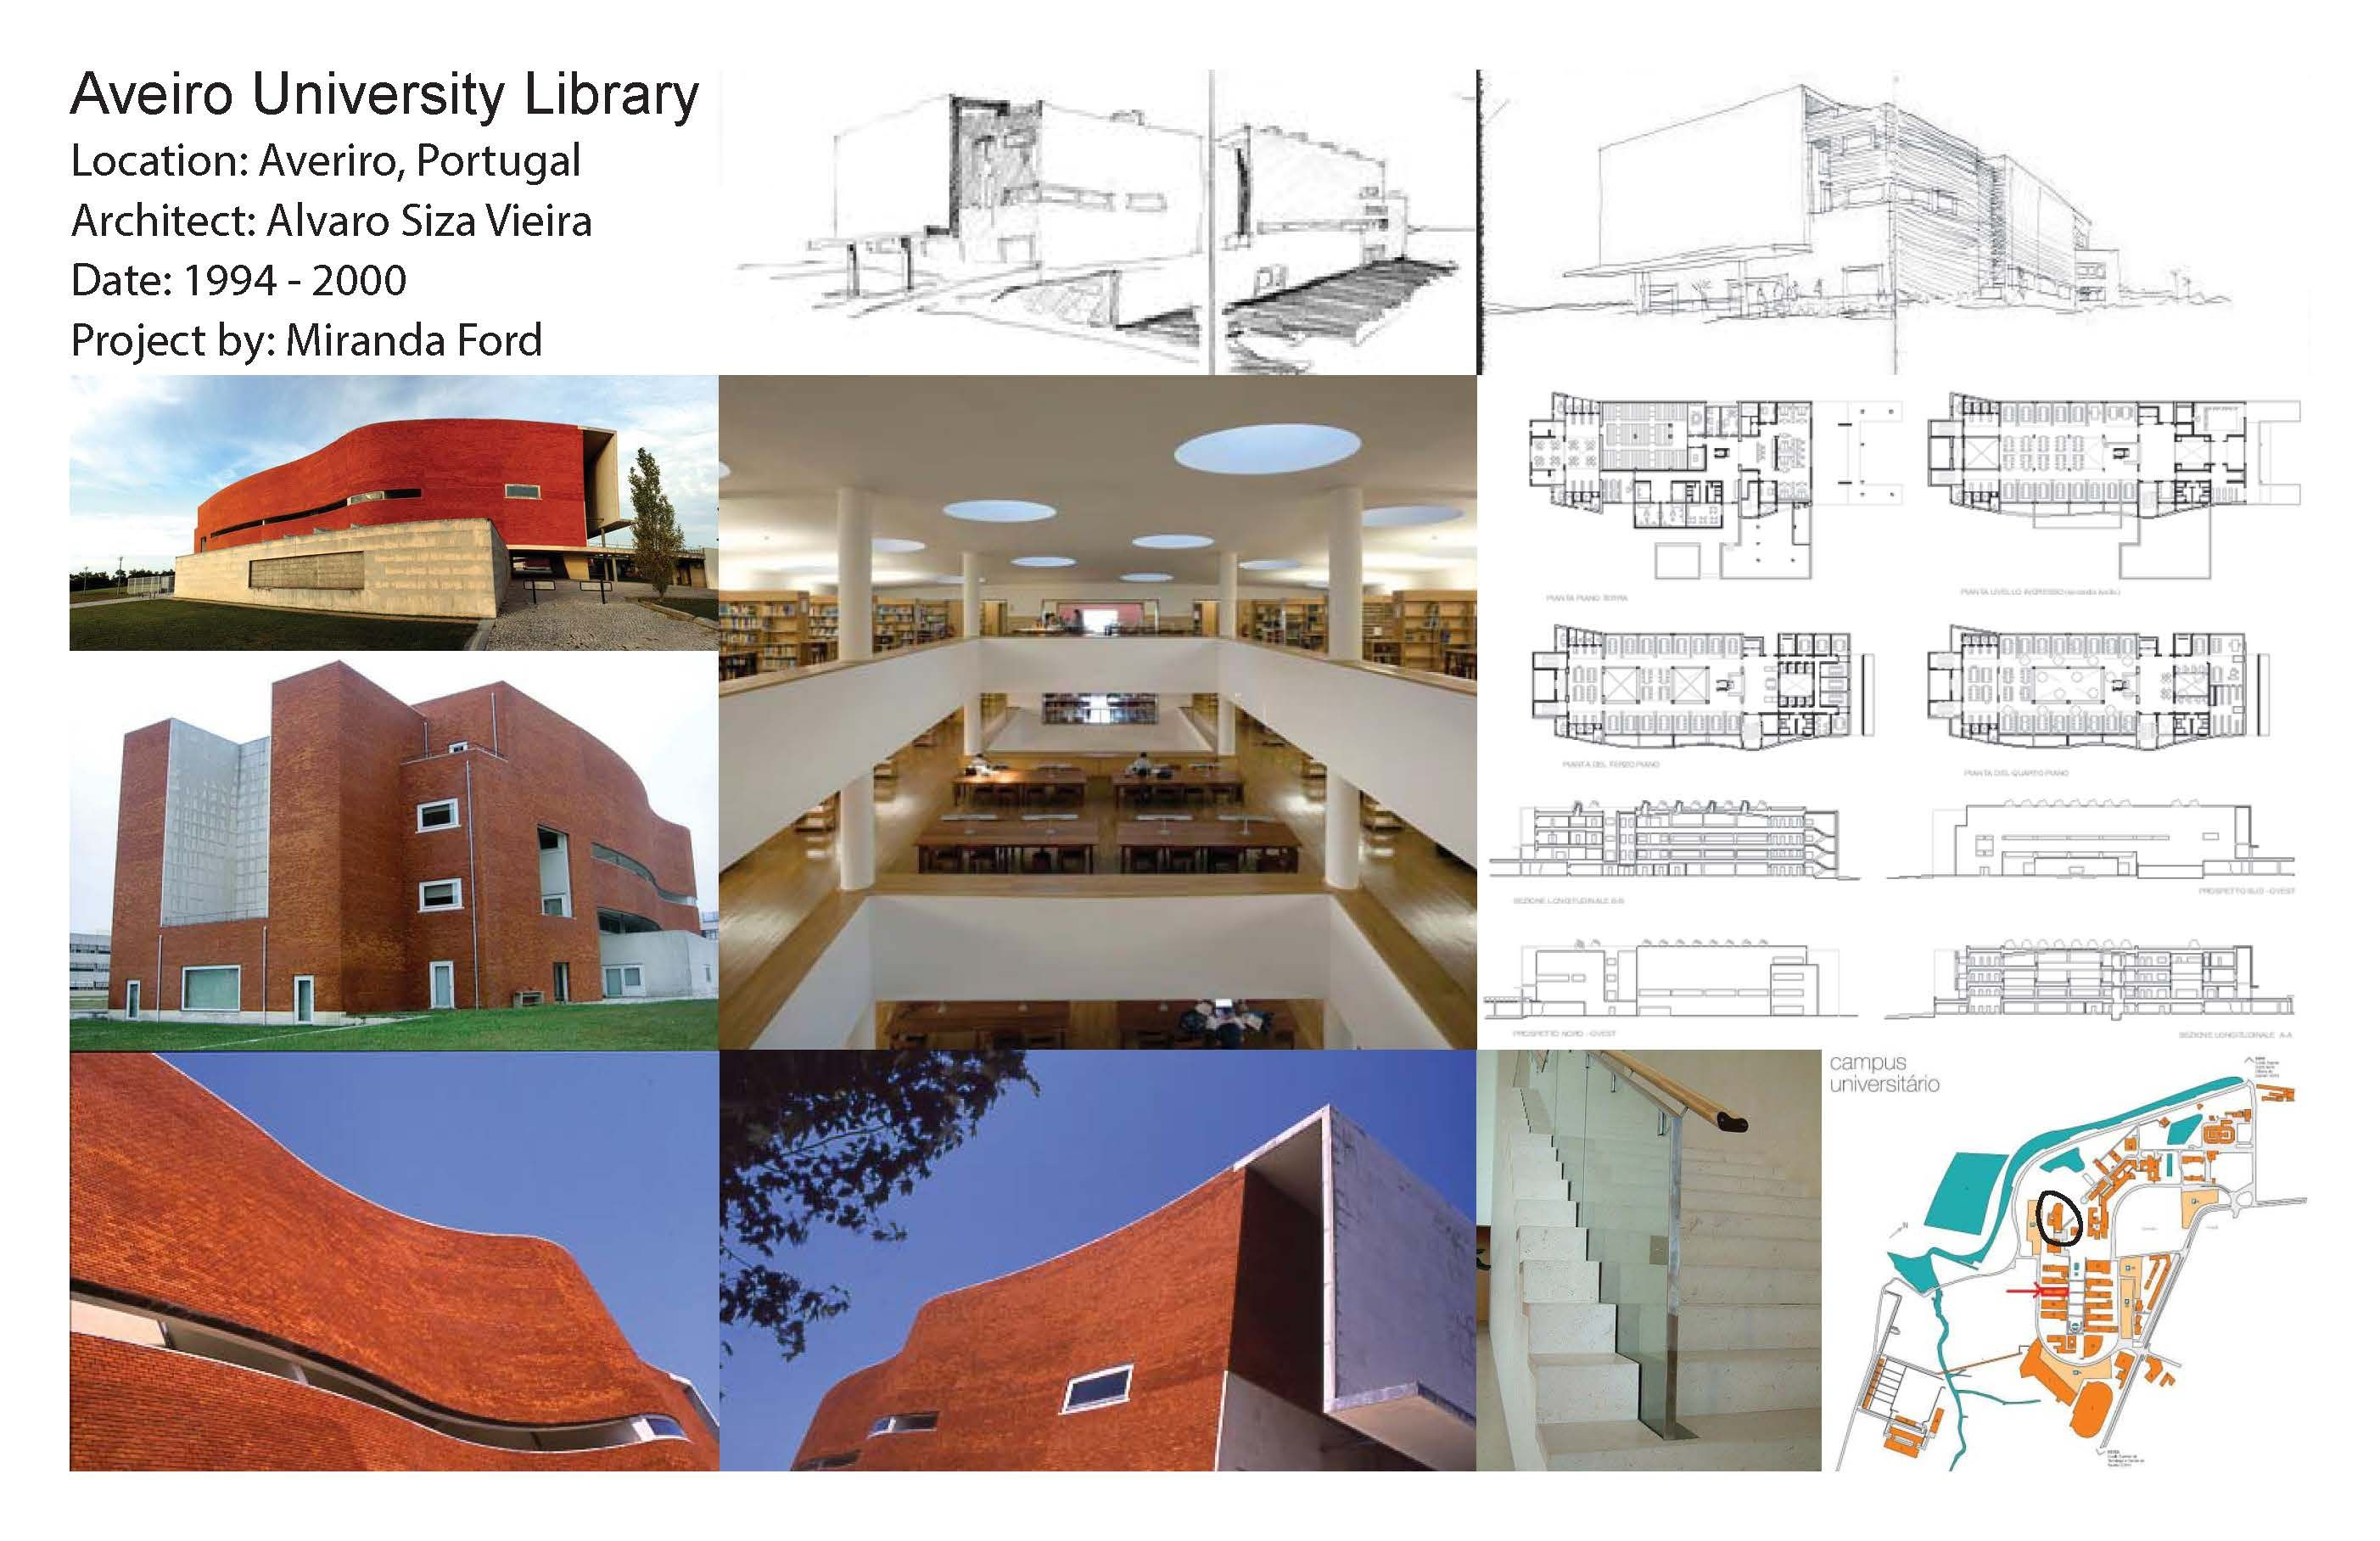 Preliminary Research Poster Of Aveiro University Library